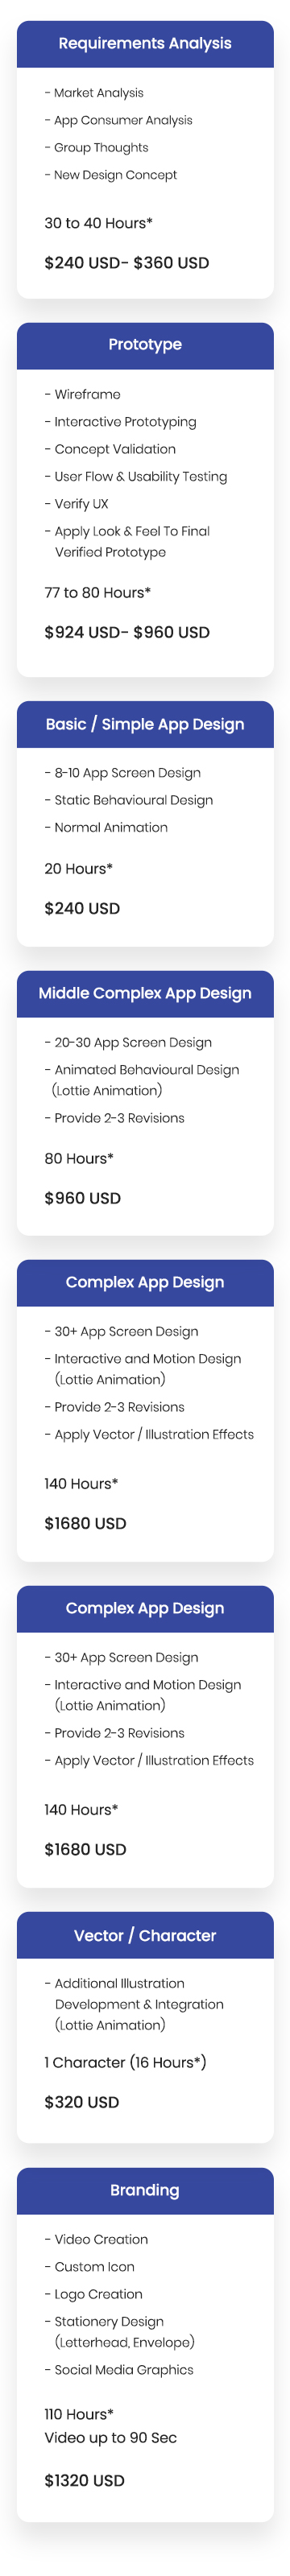 Mobile App Designing Process and Costing